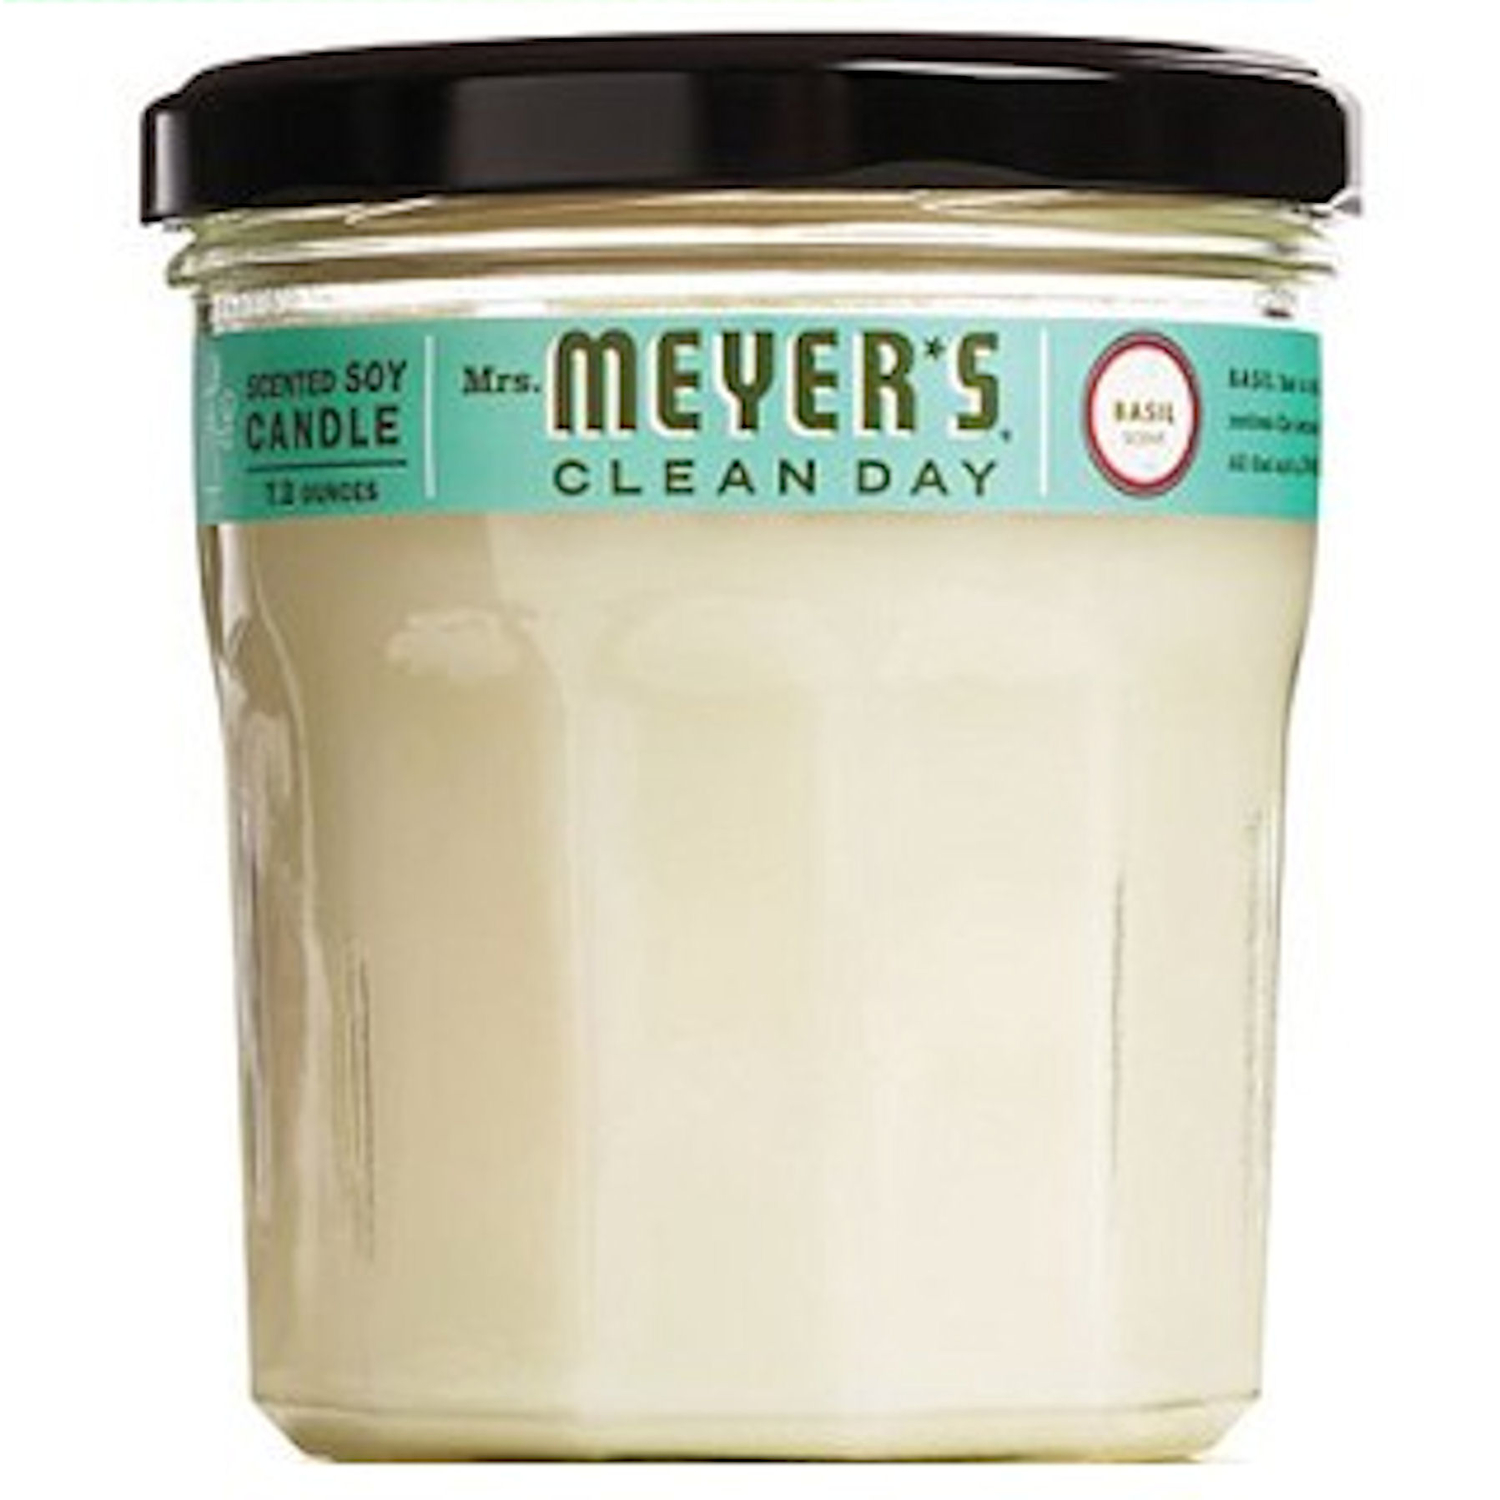 Mrs. Meyer's  Clean Day  Basil Scent 7.2 oz. Wax  Air Freshener Candle  Ivory  Soy  3.8 in. H x 2.9